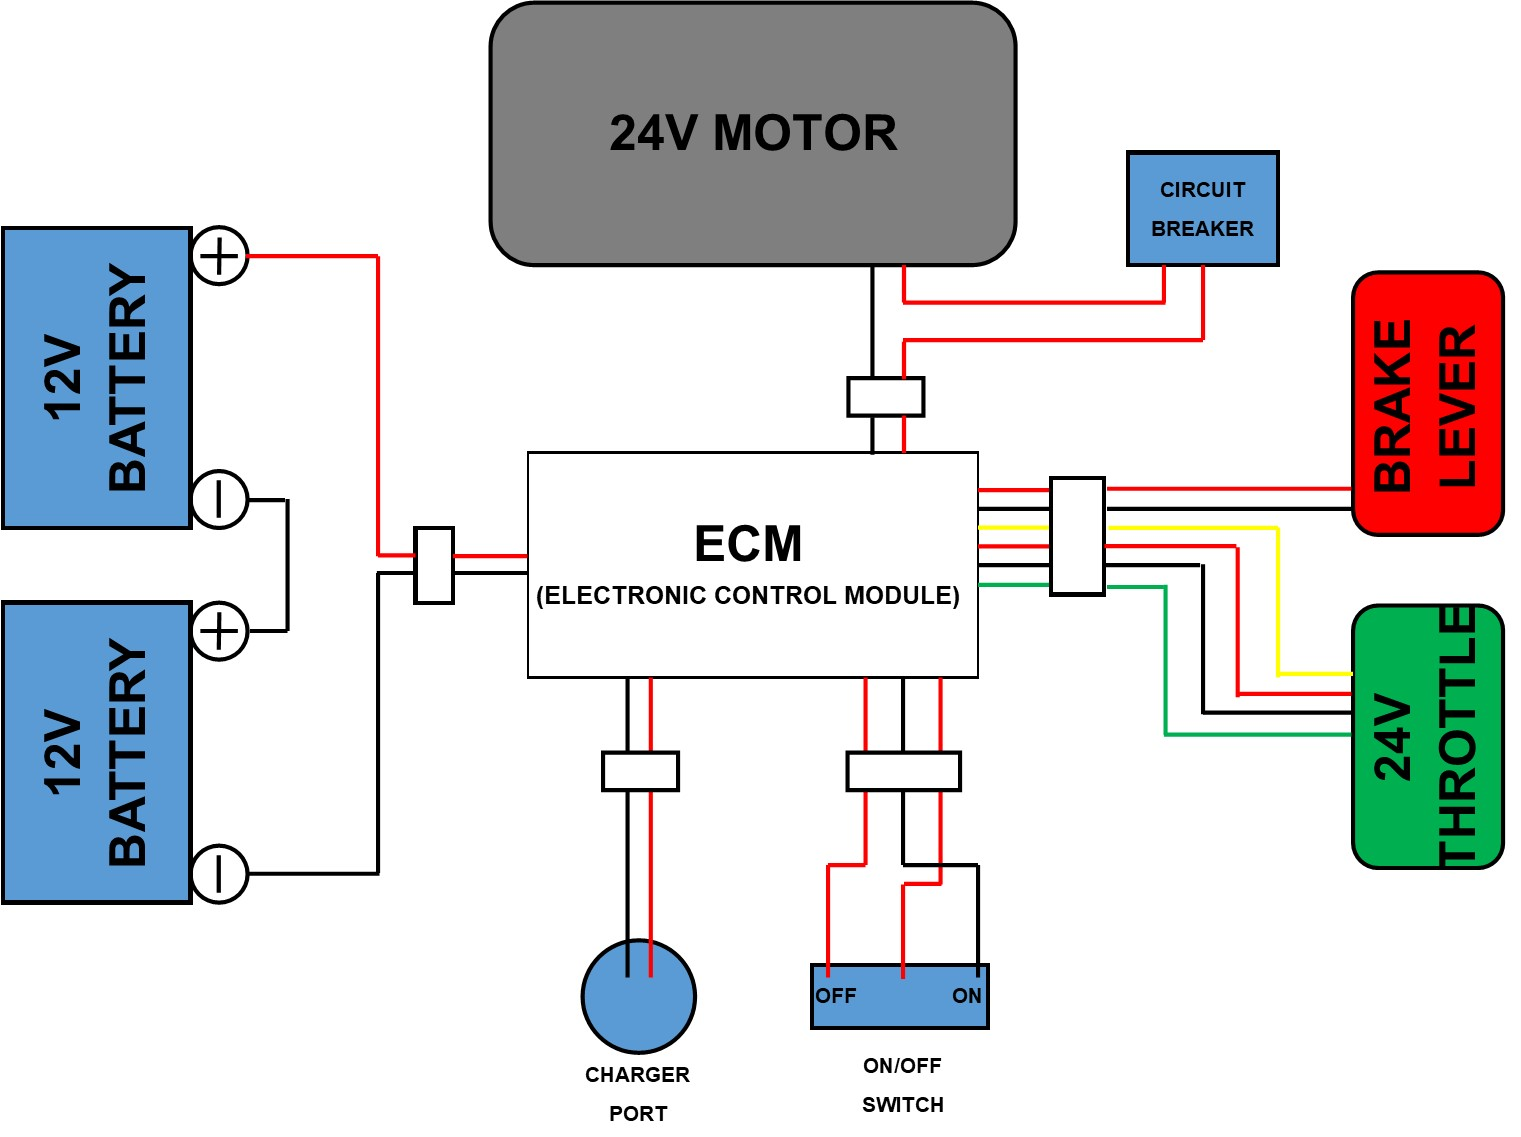 Electroswitch Series 24 Wiring Diagram from www.cruzincooler.com